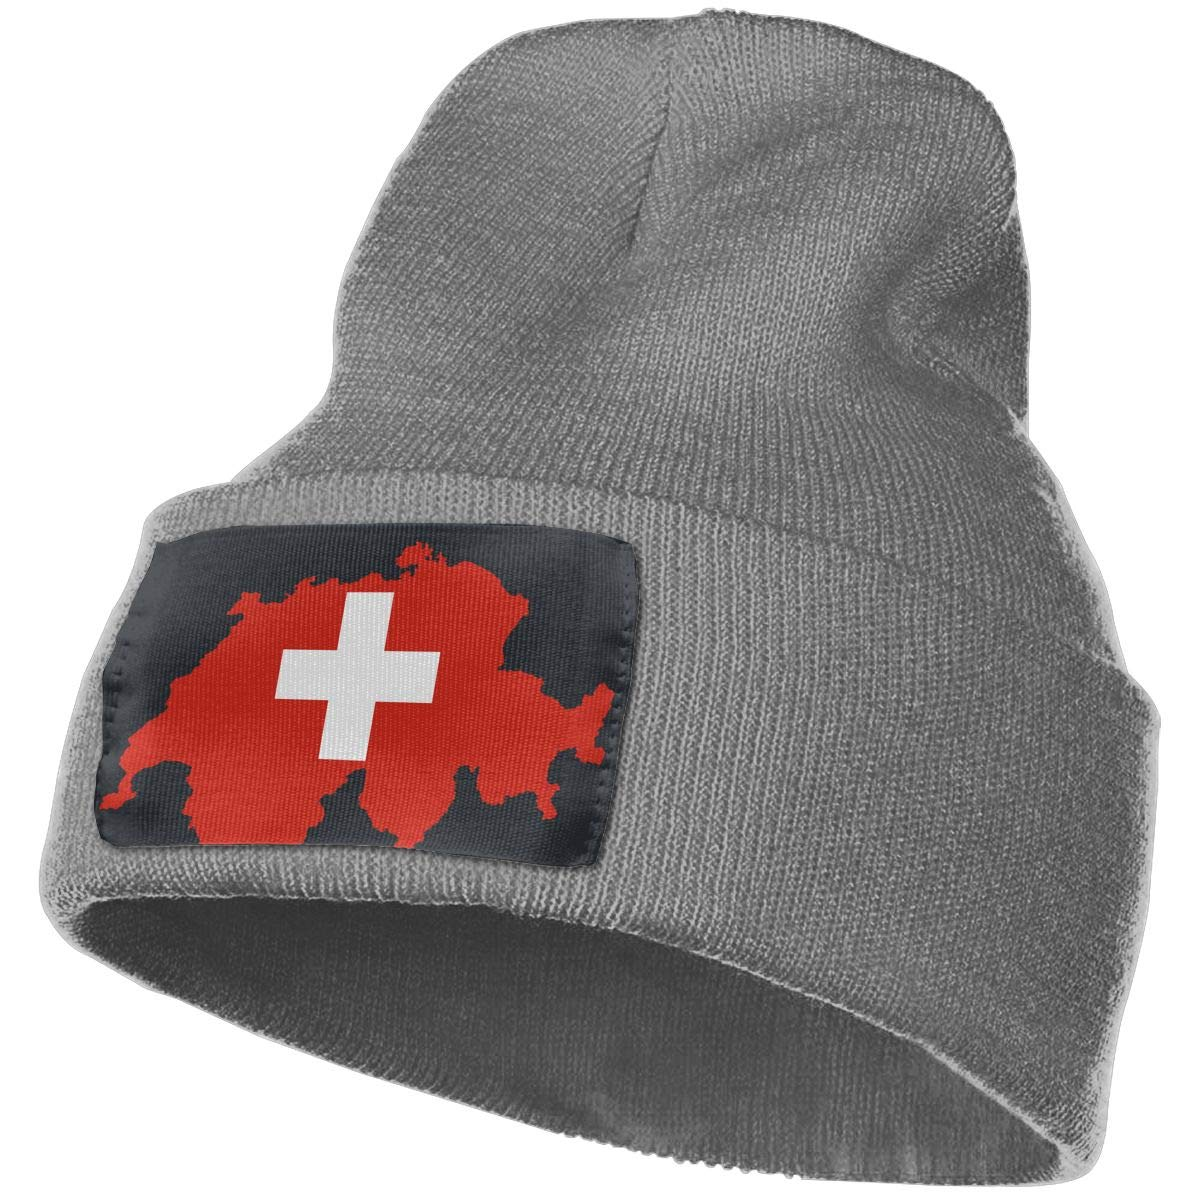 MaoXCatt Flag-map of Switzerland Unisex Winter Soft Beanie Cap